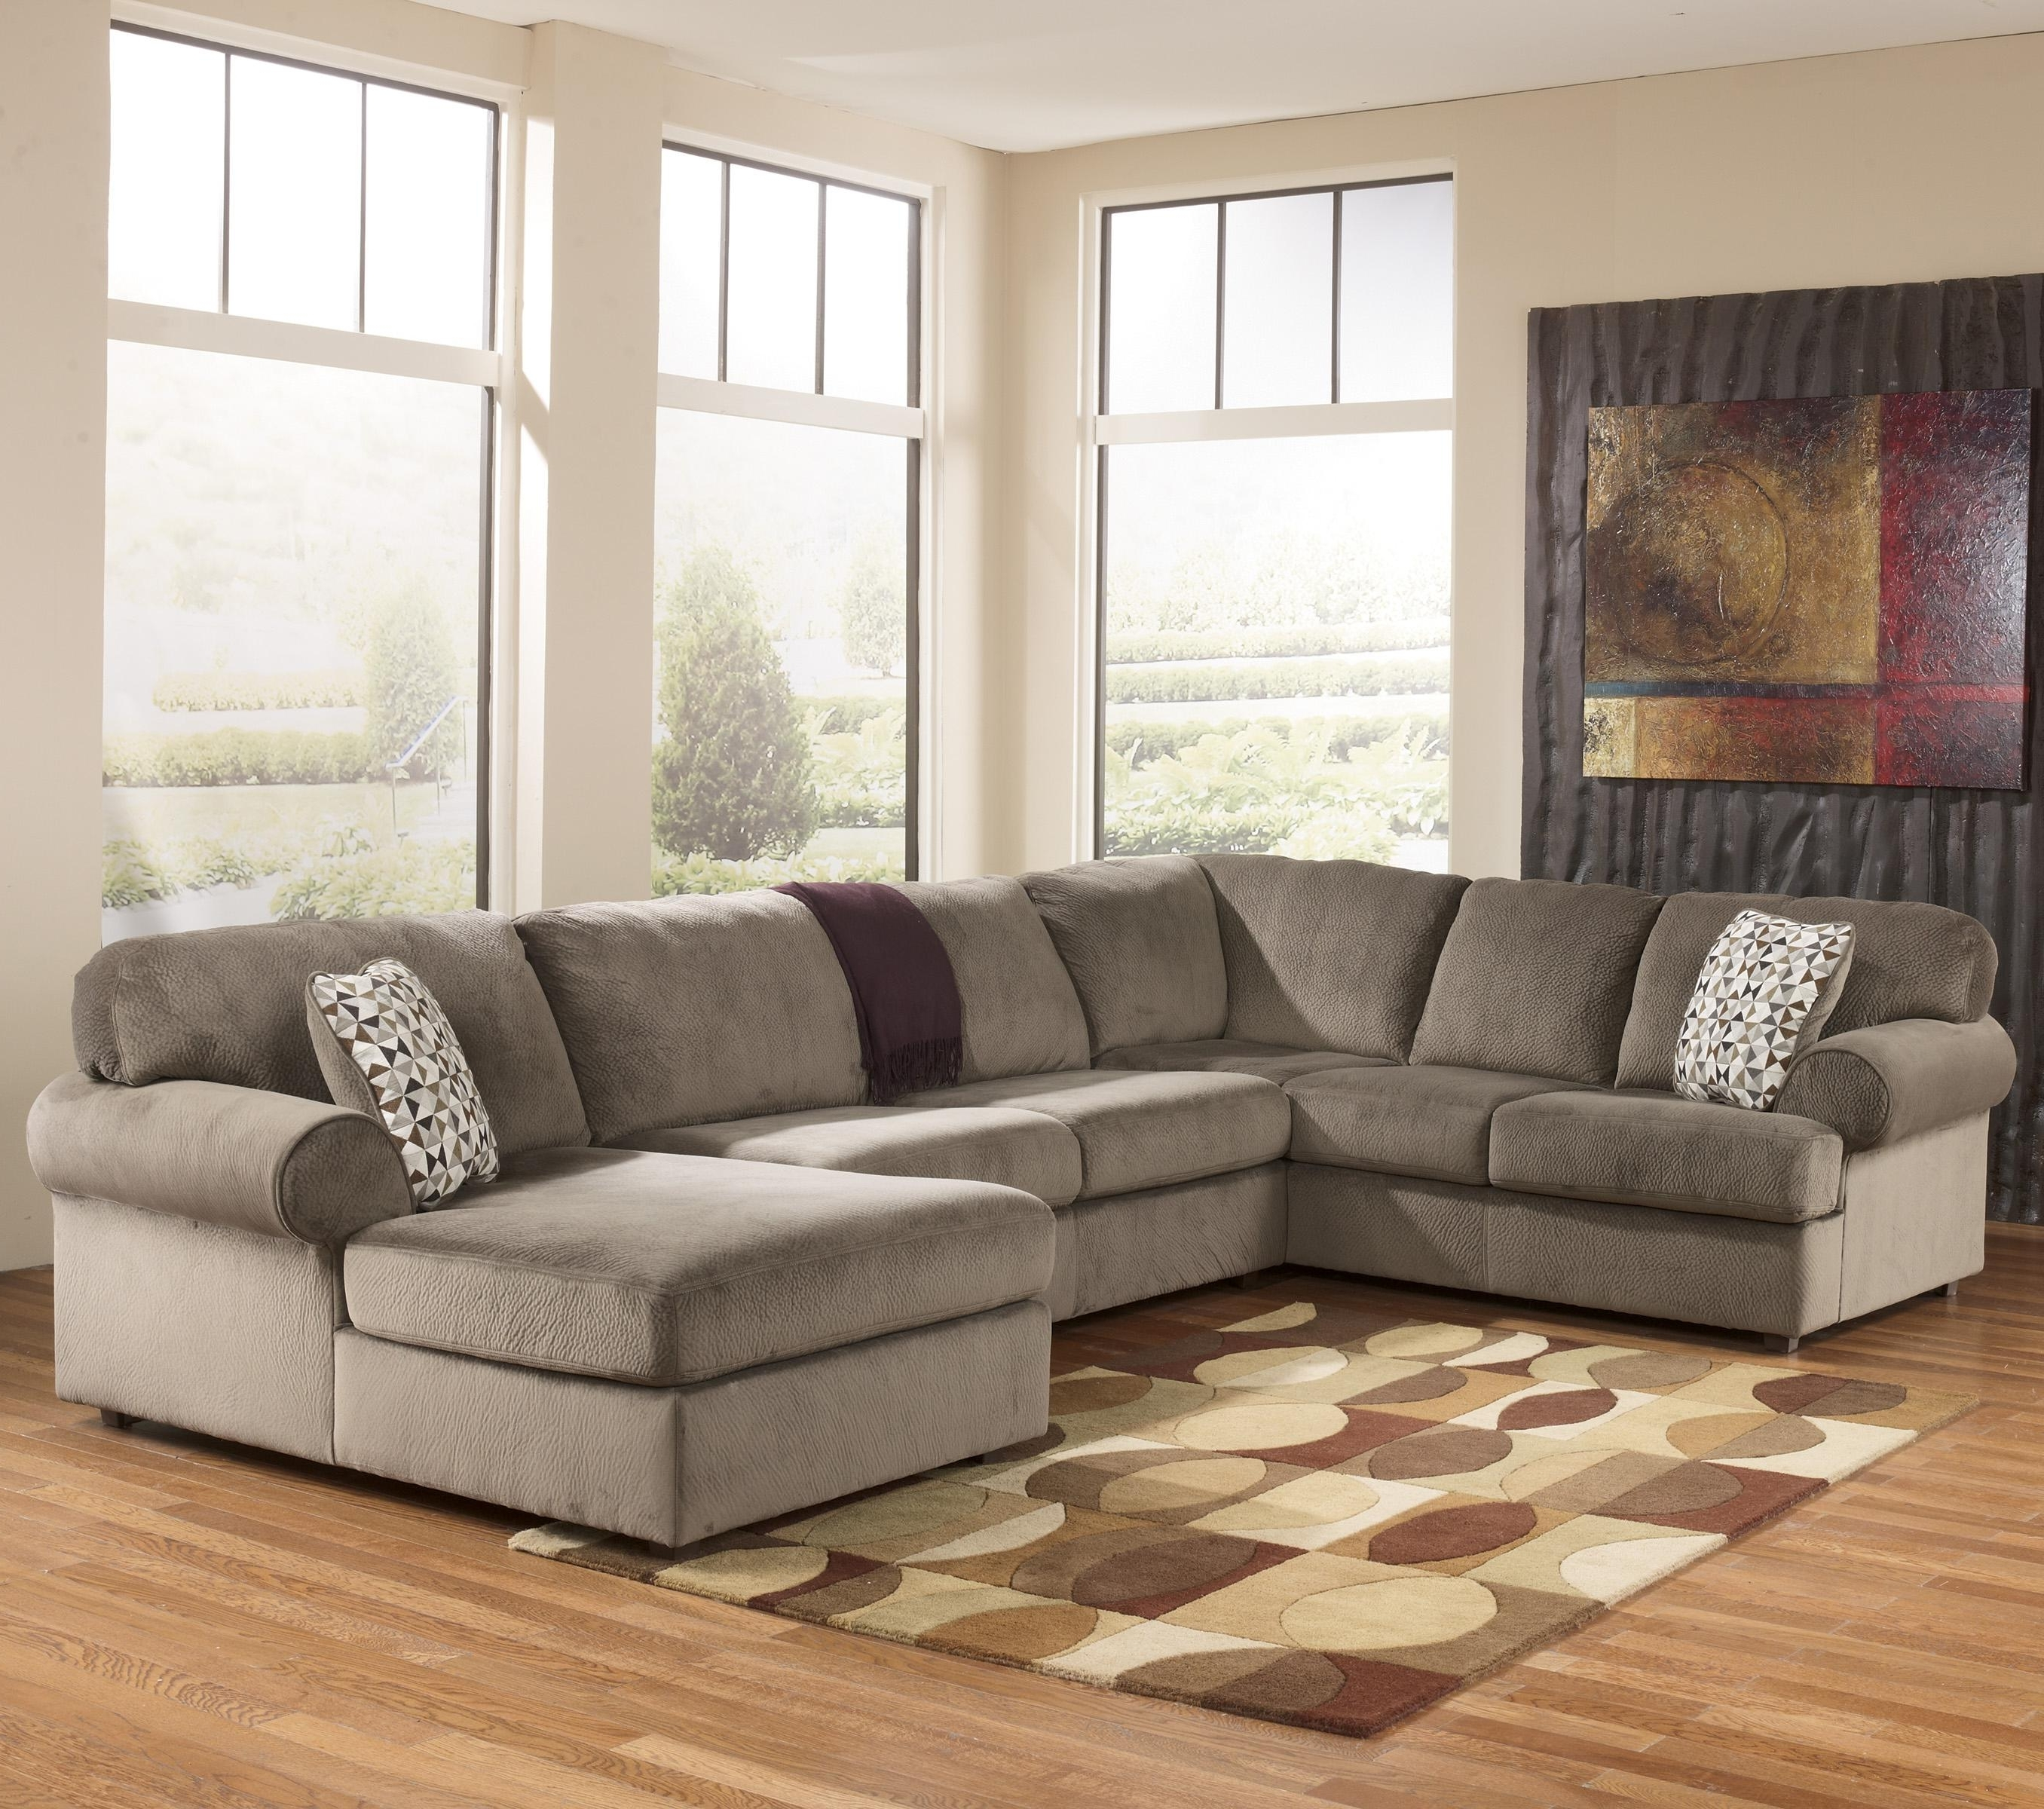 Fashionable El Paso Sectional Sofas Throughout Signature Designashley Jessa Place – Dune Casual Sectional (View 13 of 20)